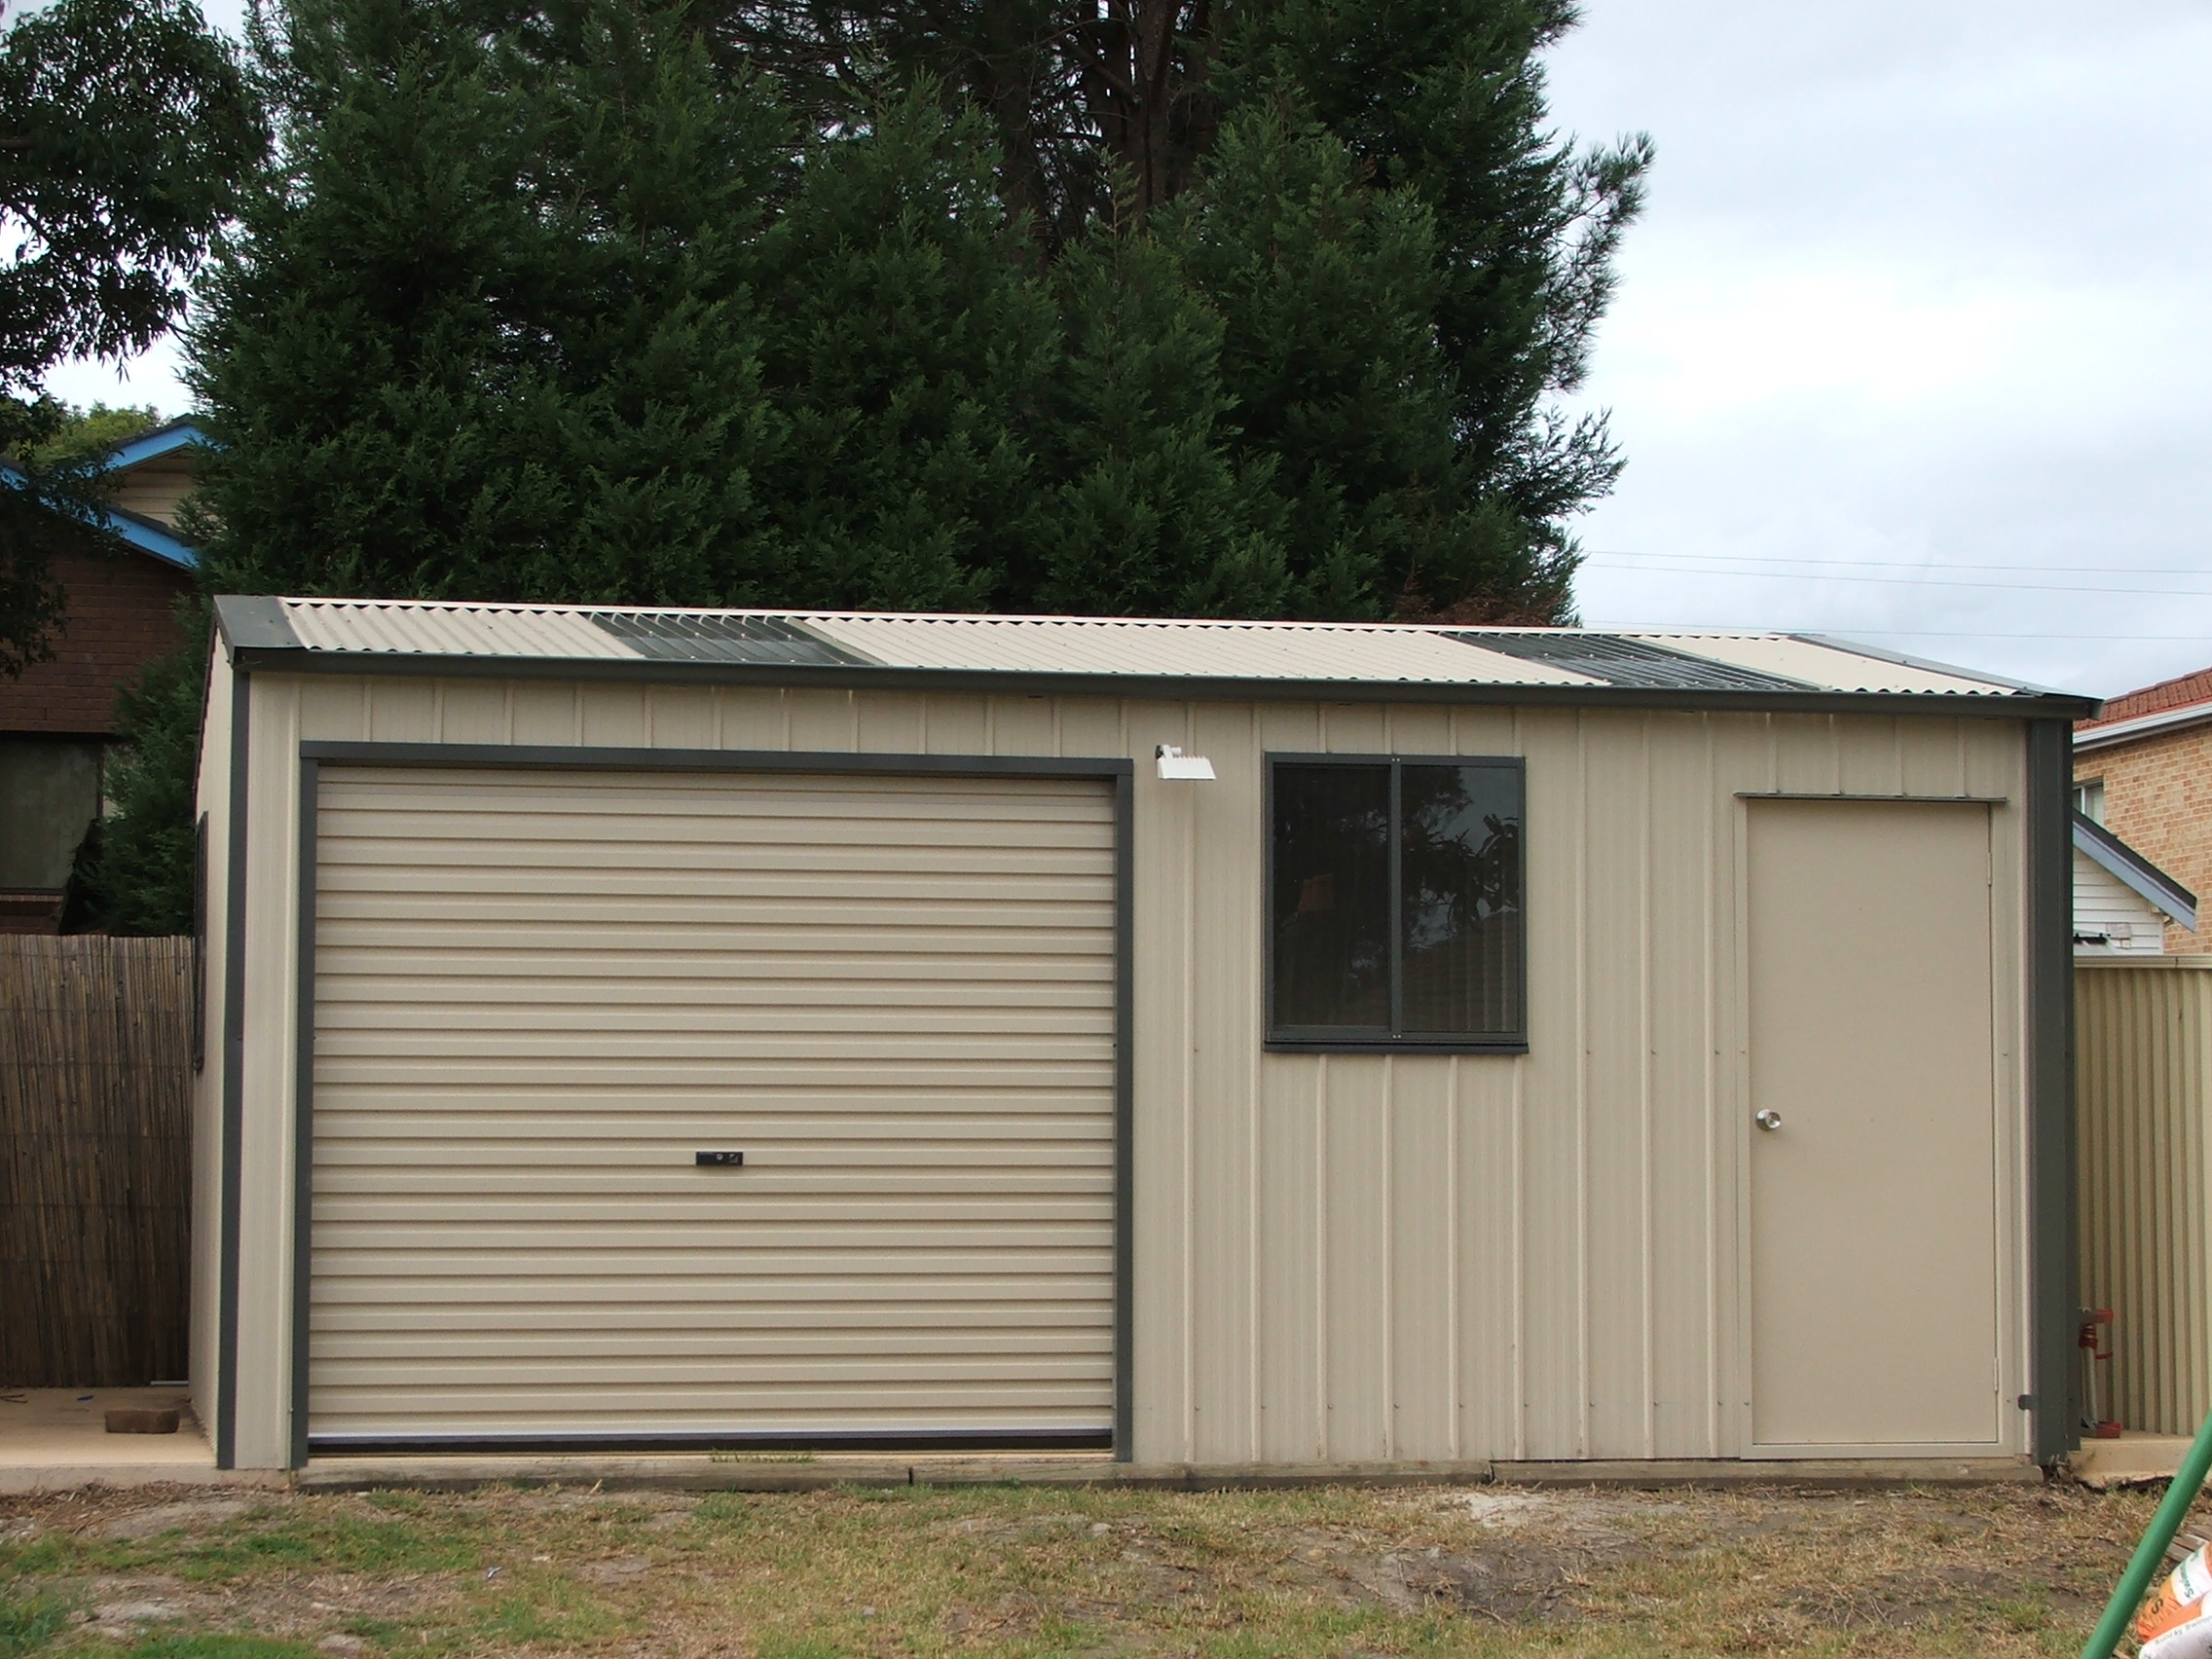 Secure cost effective home garden buildings garages for Stand alone garage kits